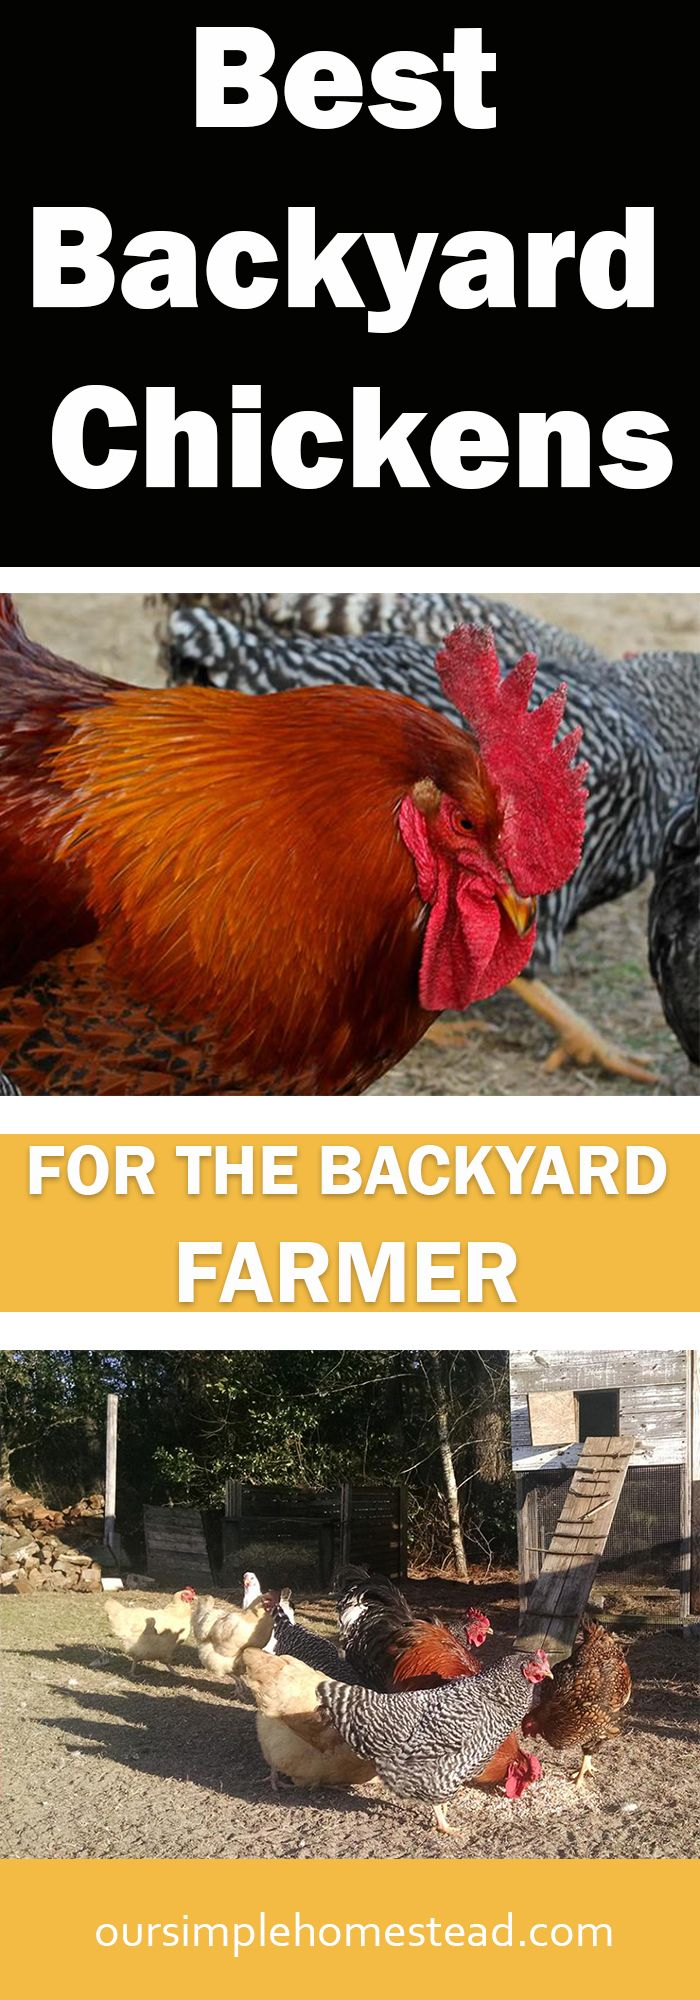 Best Backyard Chickens For The Backyard Farmer   While Most Chickens Are  Bred To Produce Either